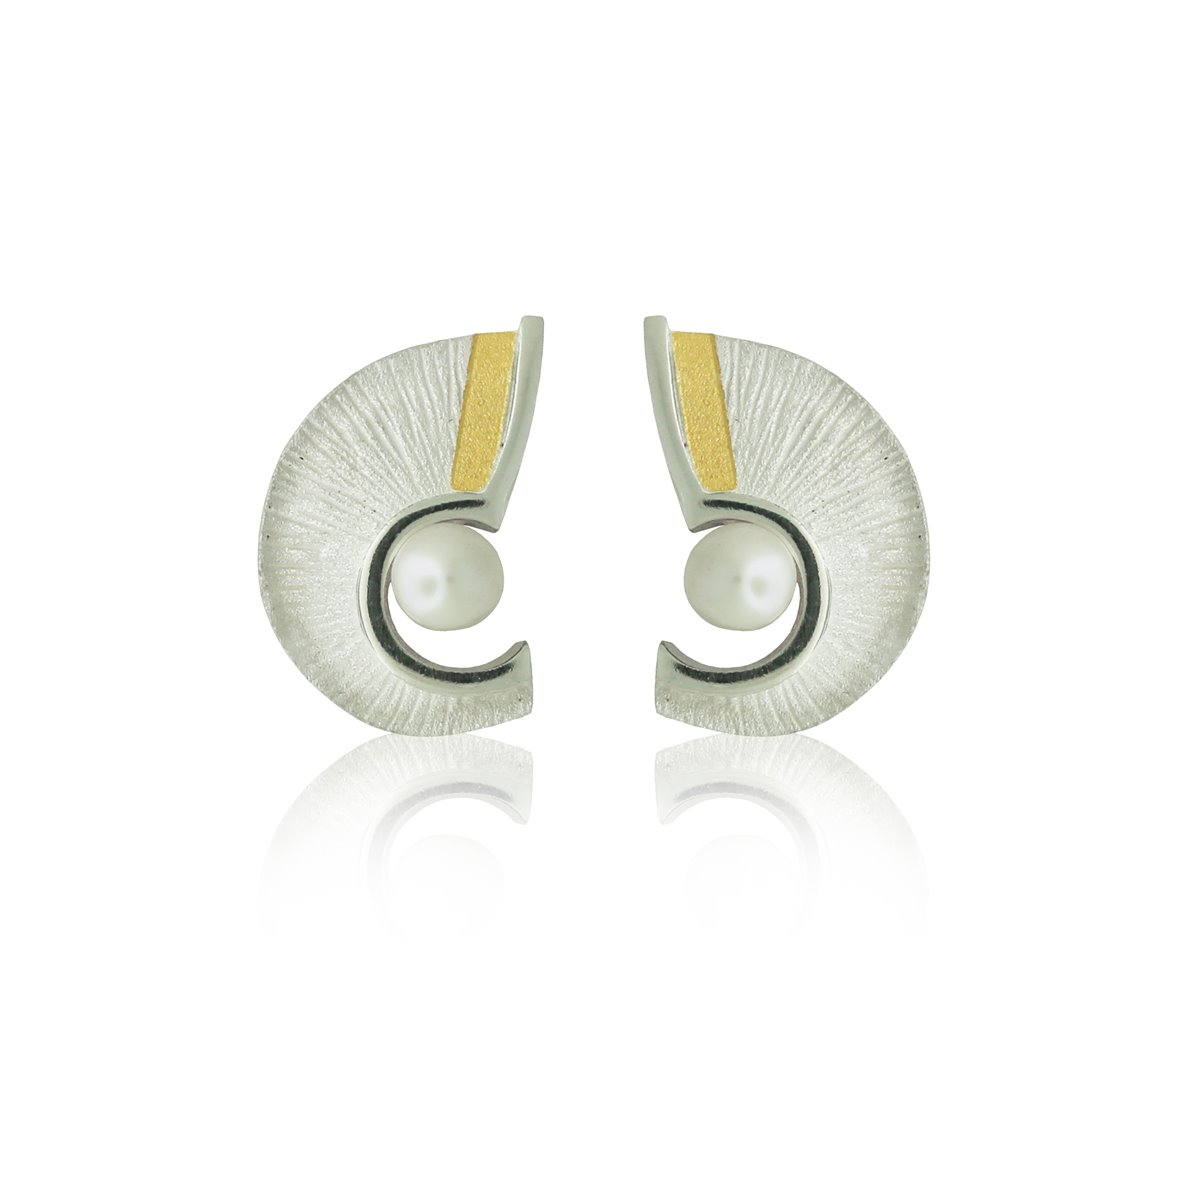 SILVER & GOLD EARRINGS WITH PEARLS